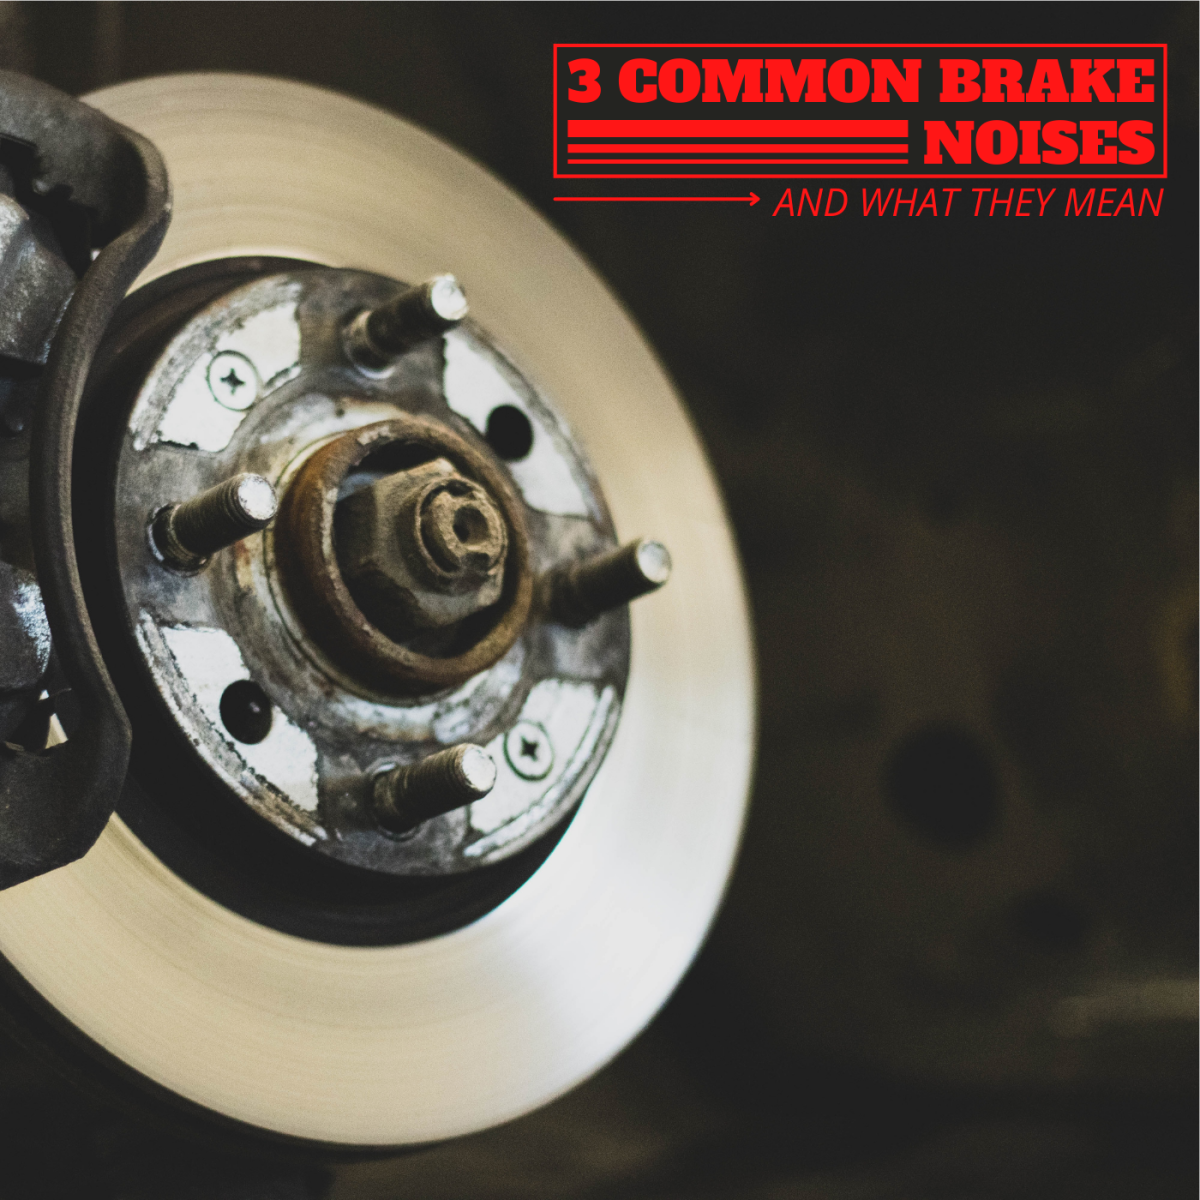 As a mechanic, the three most common brake noises I get complaints about are grinding, thumping, and squeaking.